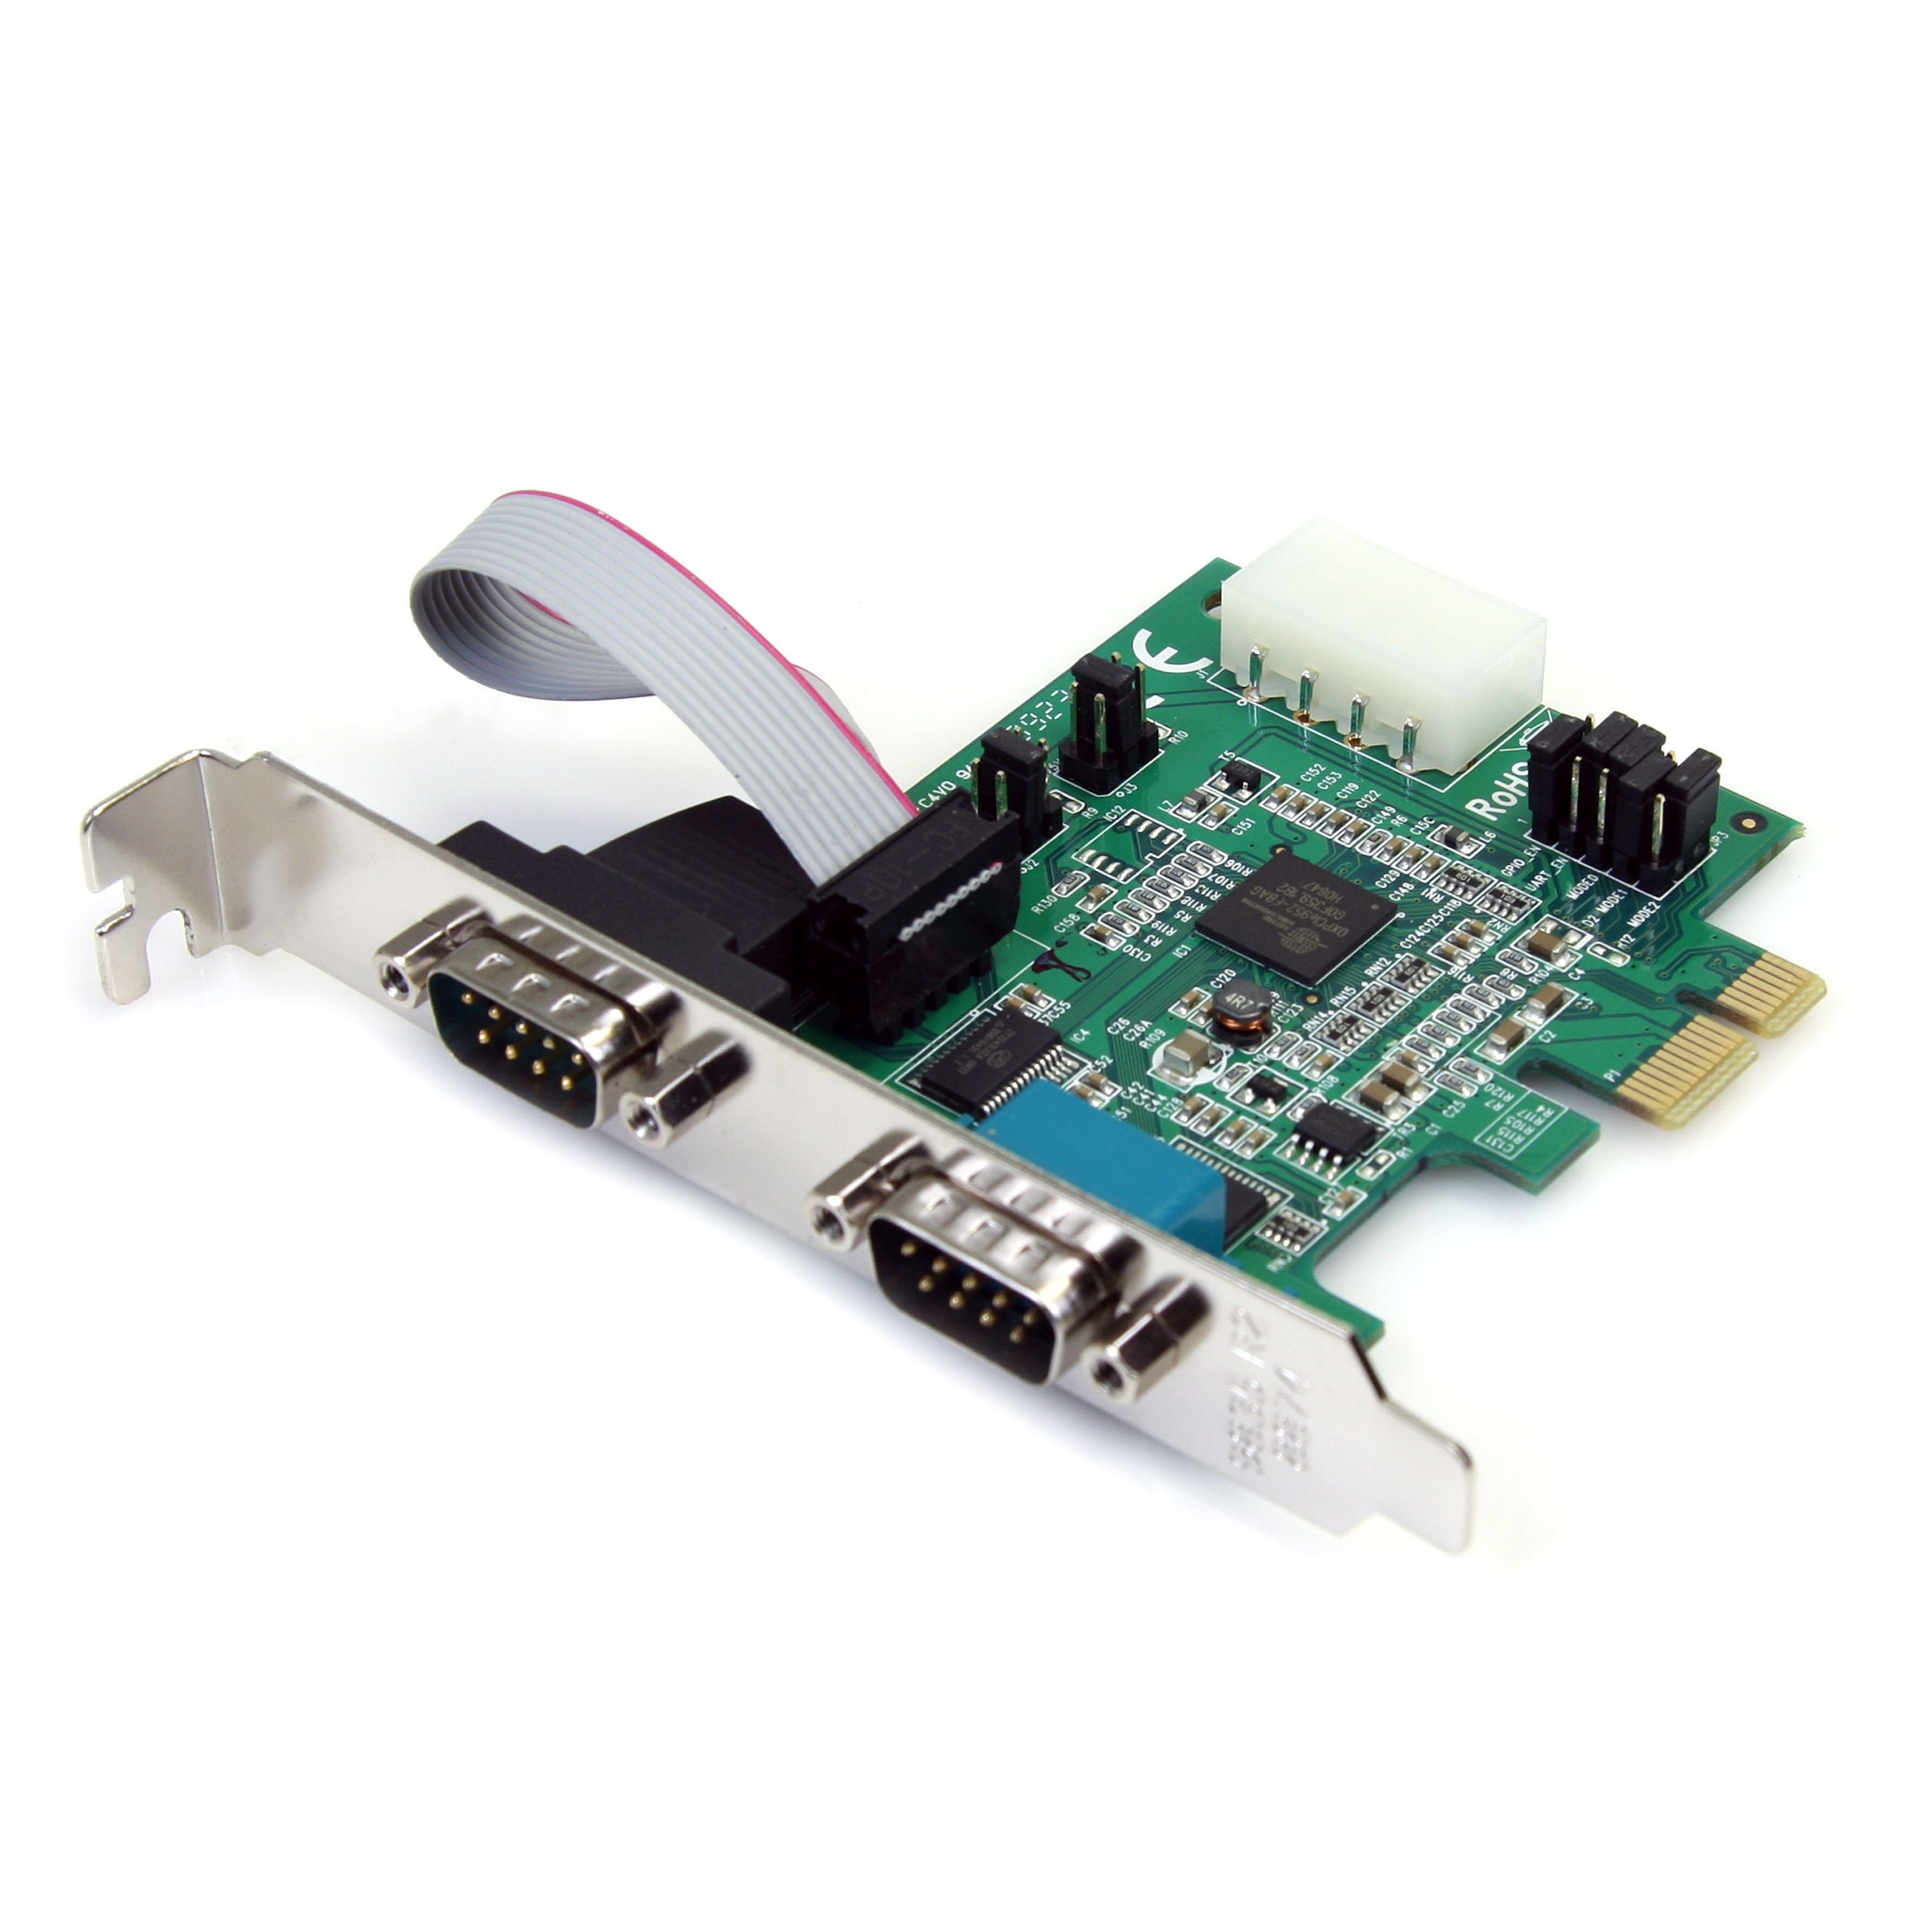 StarTech.com 2 Port Native PCI Express RS232 Serial Adapter Card with 16950 UART (PEX2S952) by StarTech